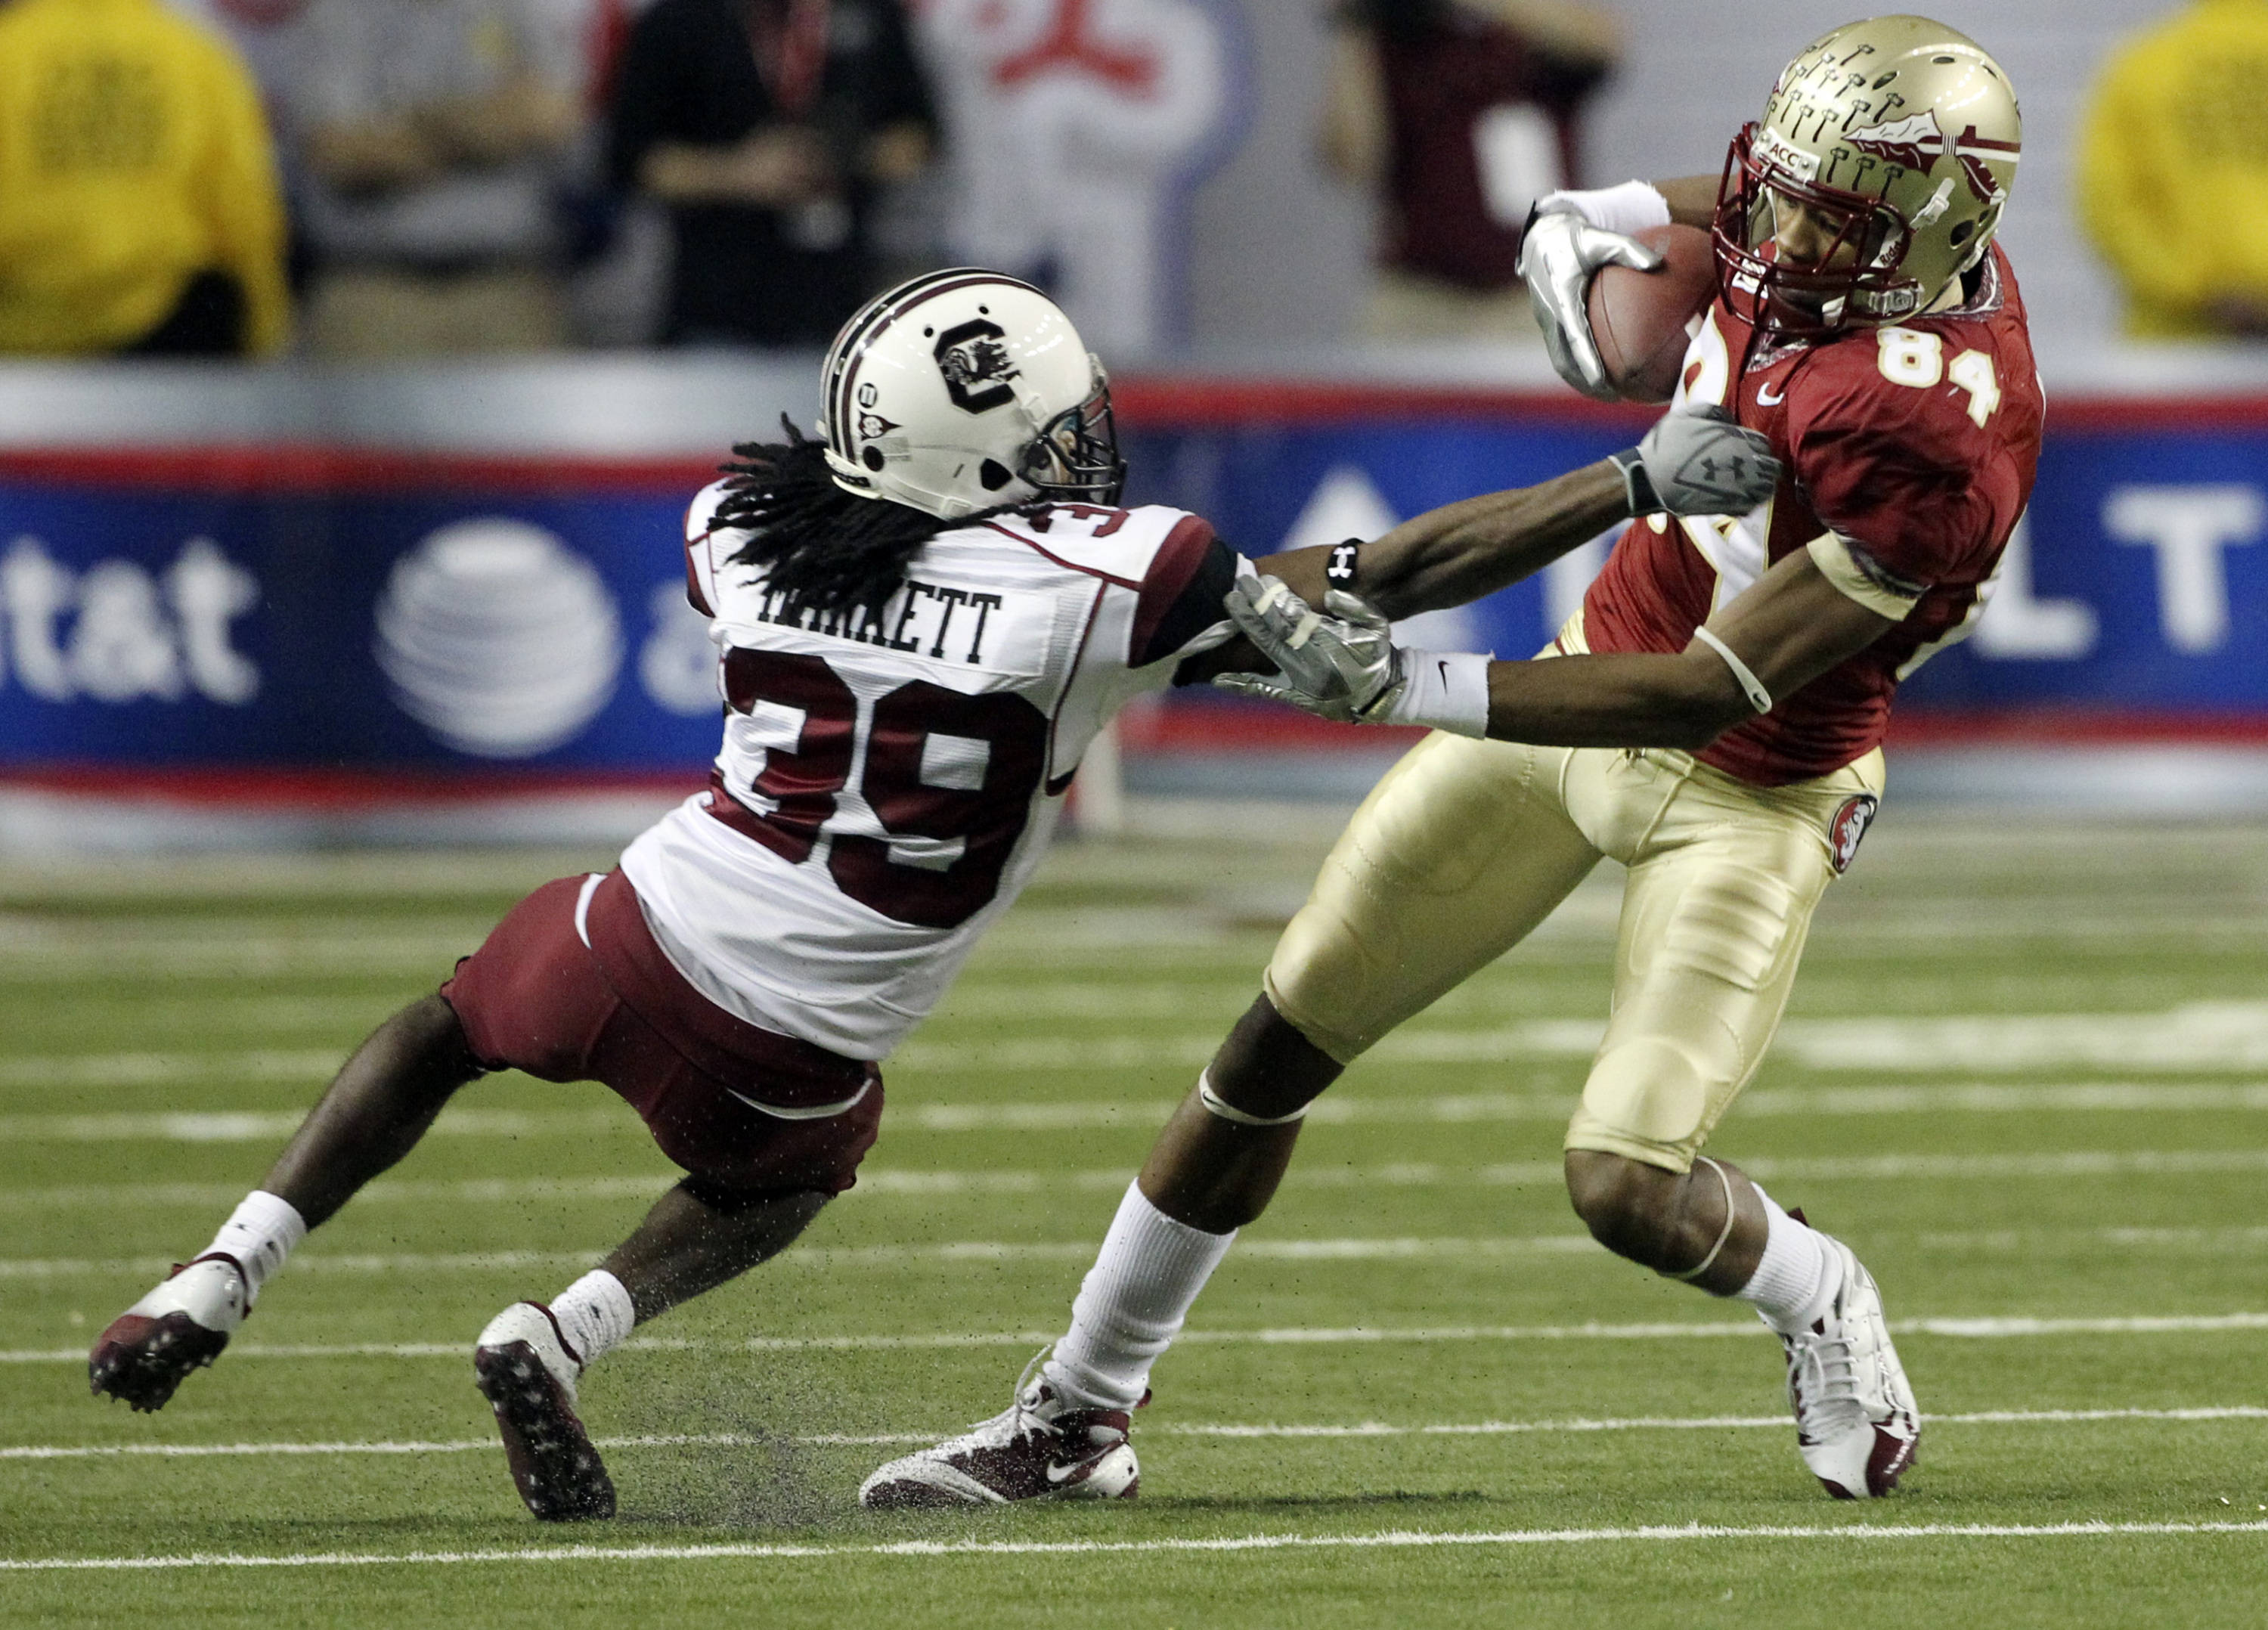 Florida State wide receiver Rodney Smith (84) breaks away from South Carolina cornerback Marty Markett (39) after making a catch in the fourth quarter of the Chick-fil-A Bowl on Friday, Dec. 31, 2010, in Atlanta. (AP Photo/John Bazemore)